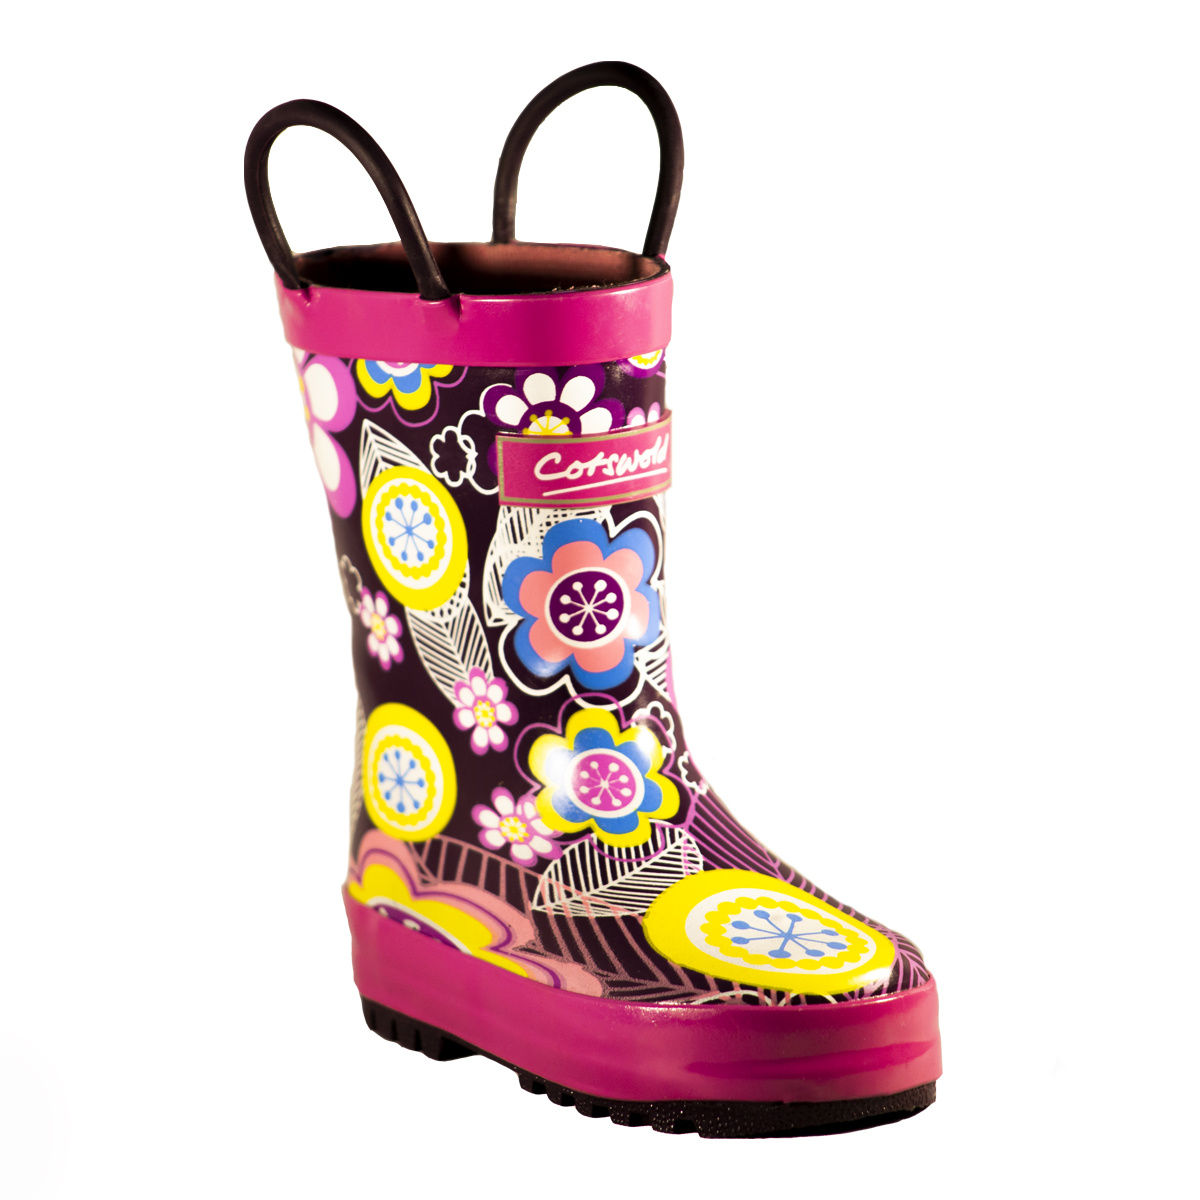 Puddle Wellie Boots